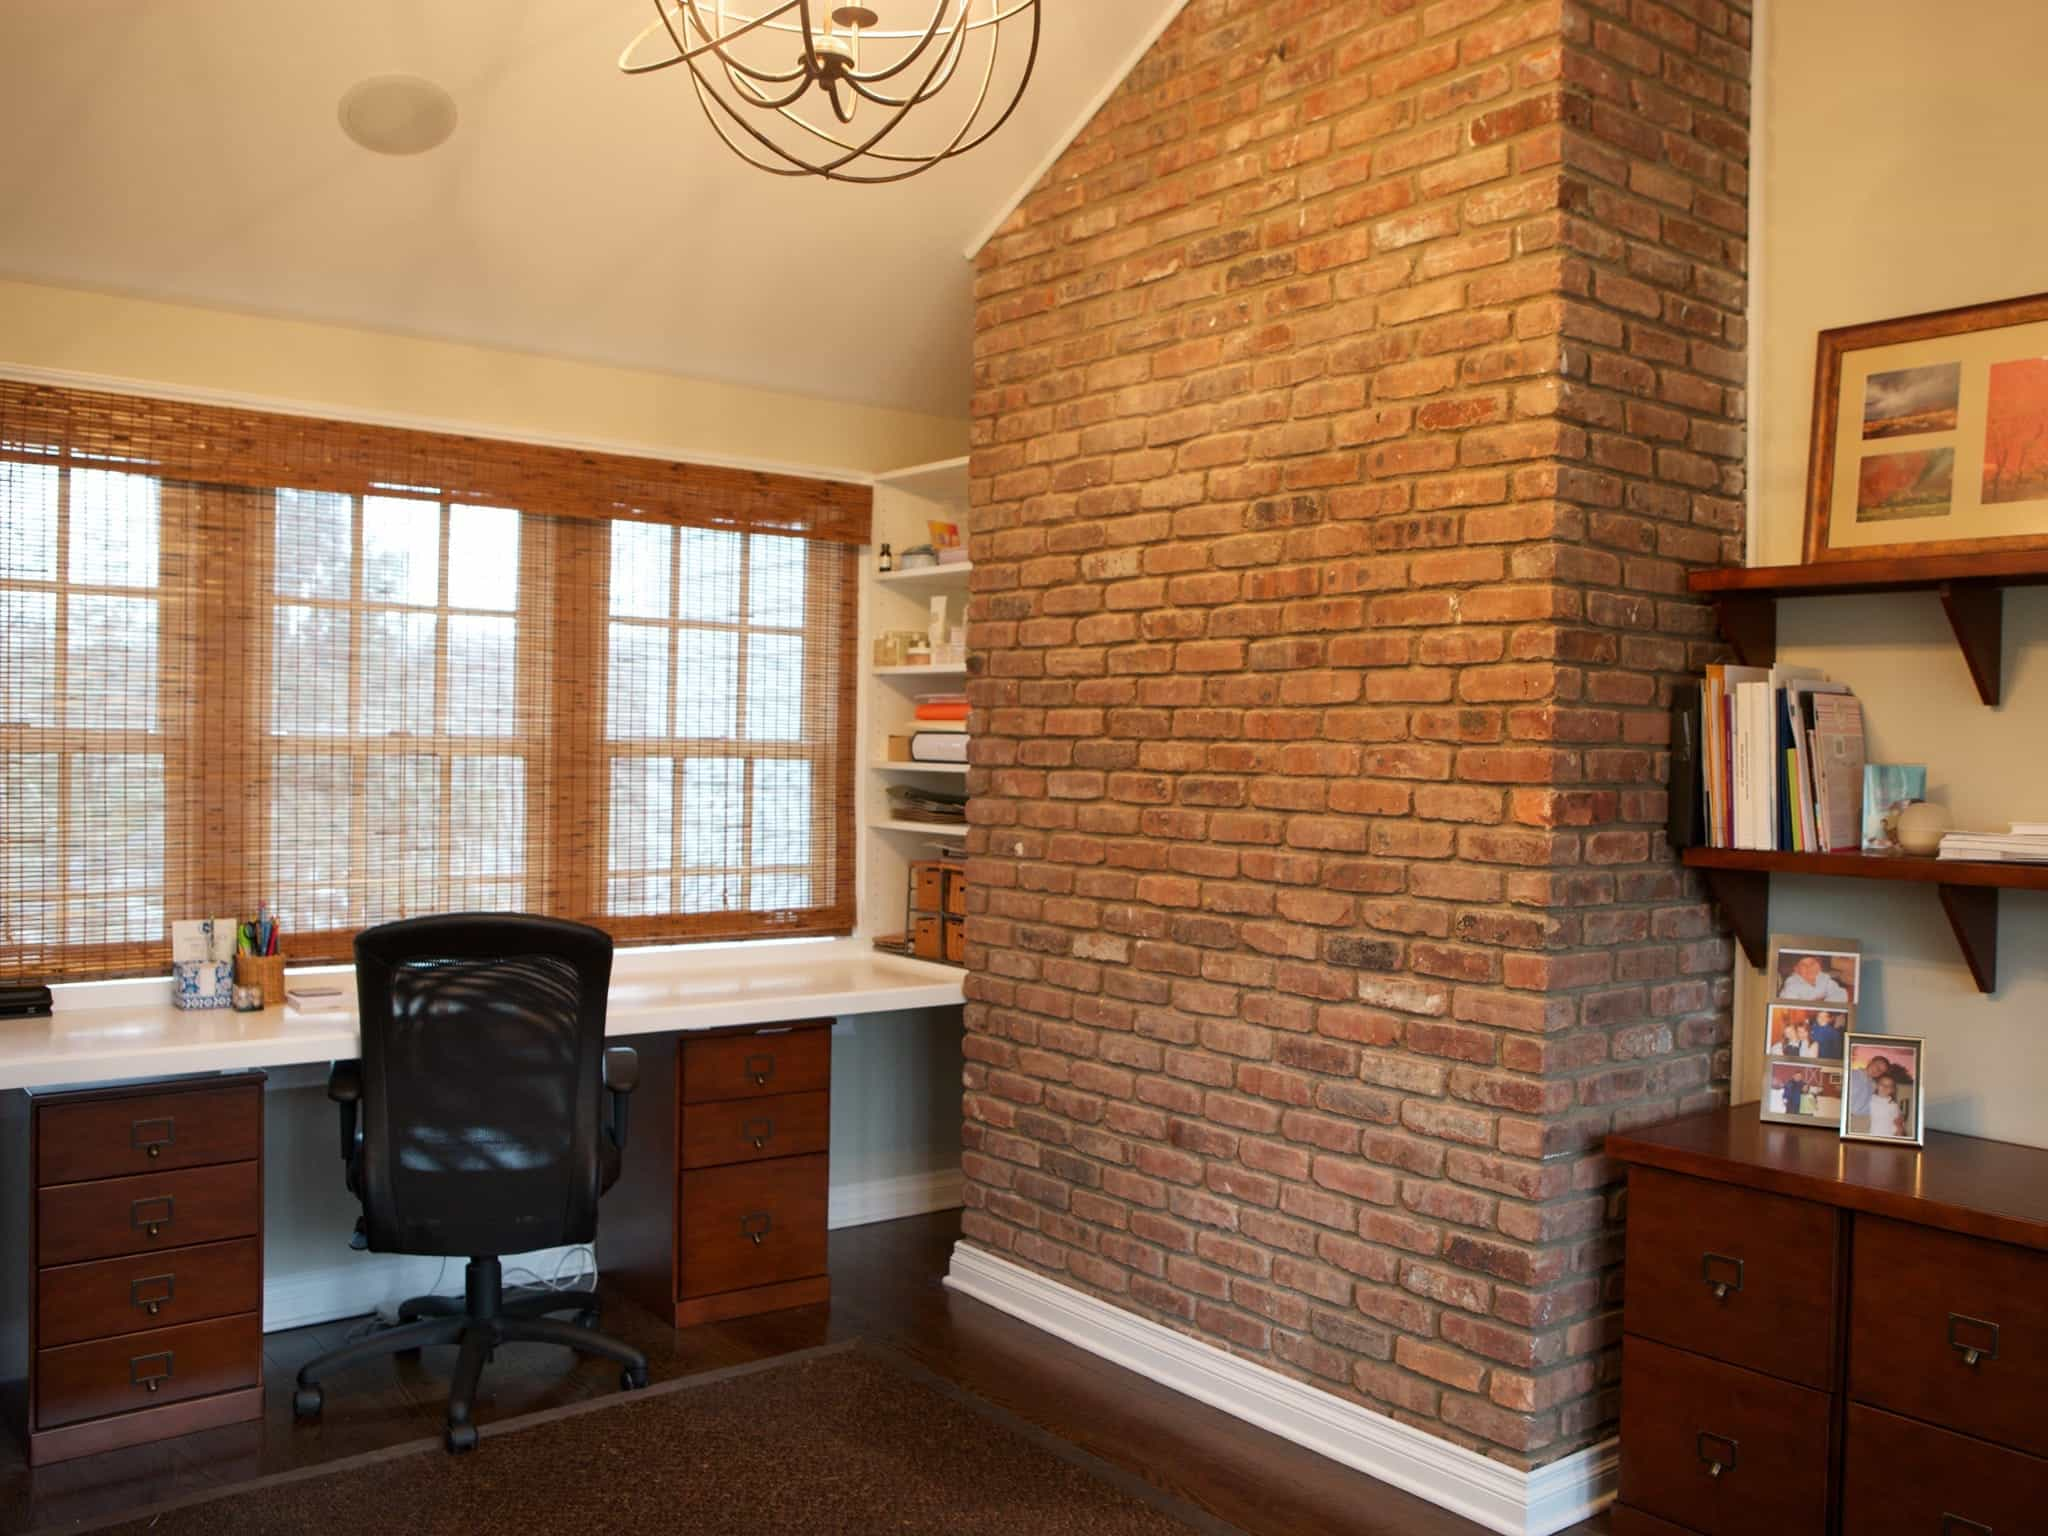 A Neutral Home Office With A Brick Wall (Image 1 of 30)